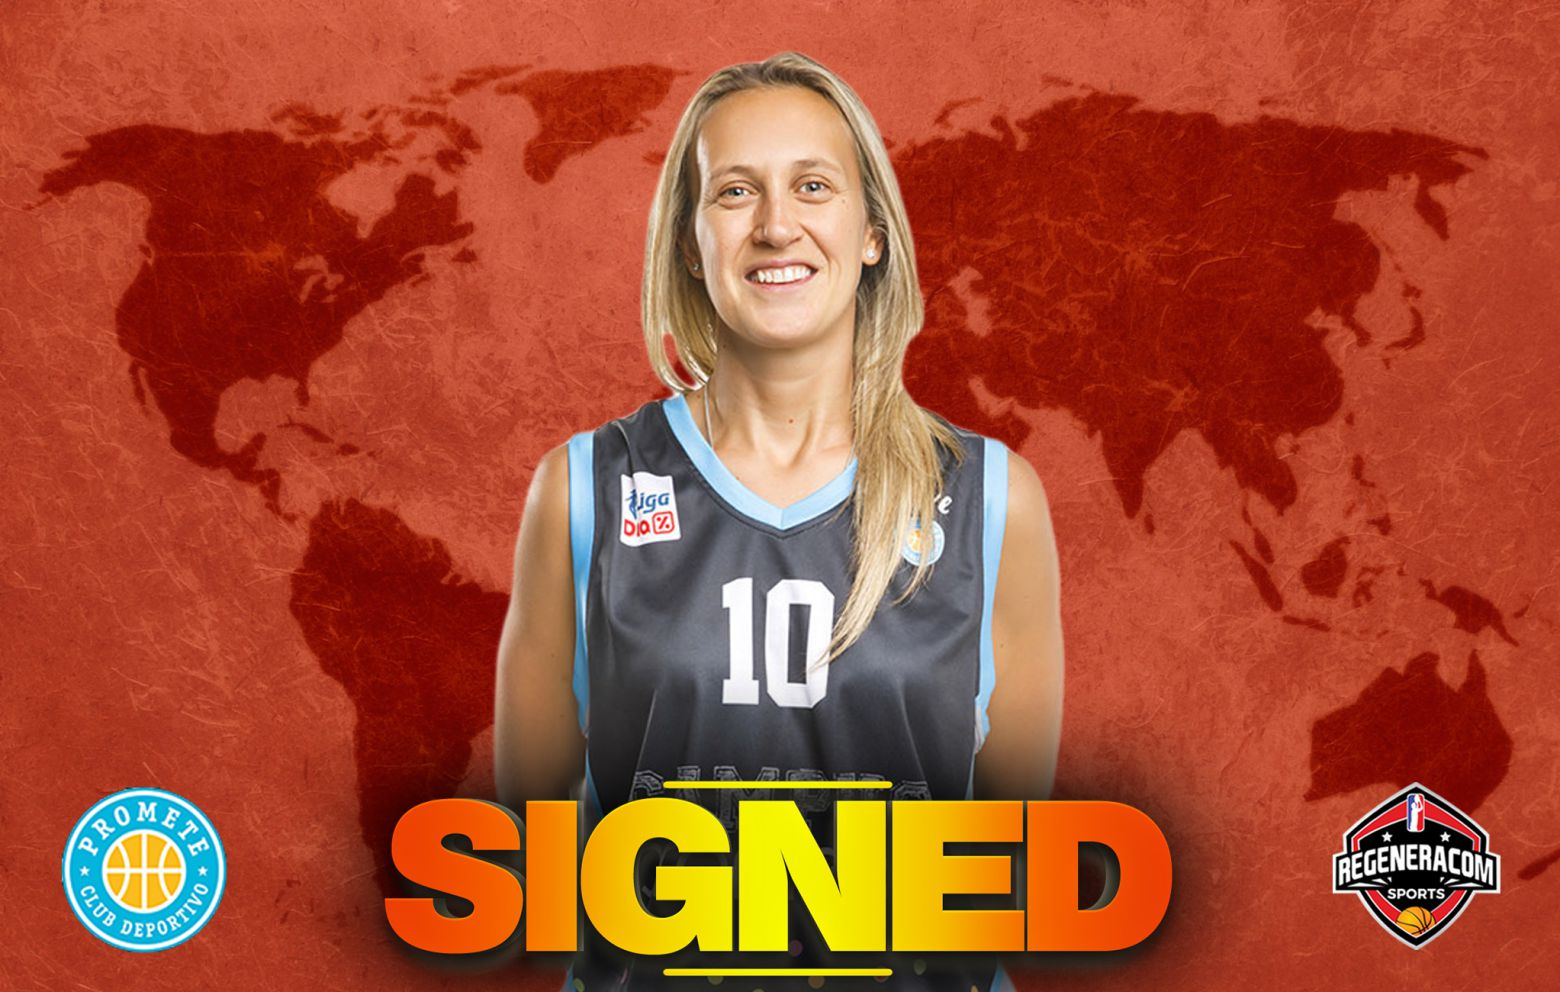 ADRIJANA KNEZEVIC has signed in Spain with Campus Promete